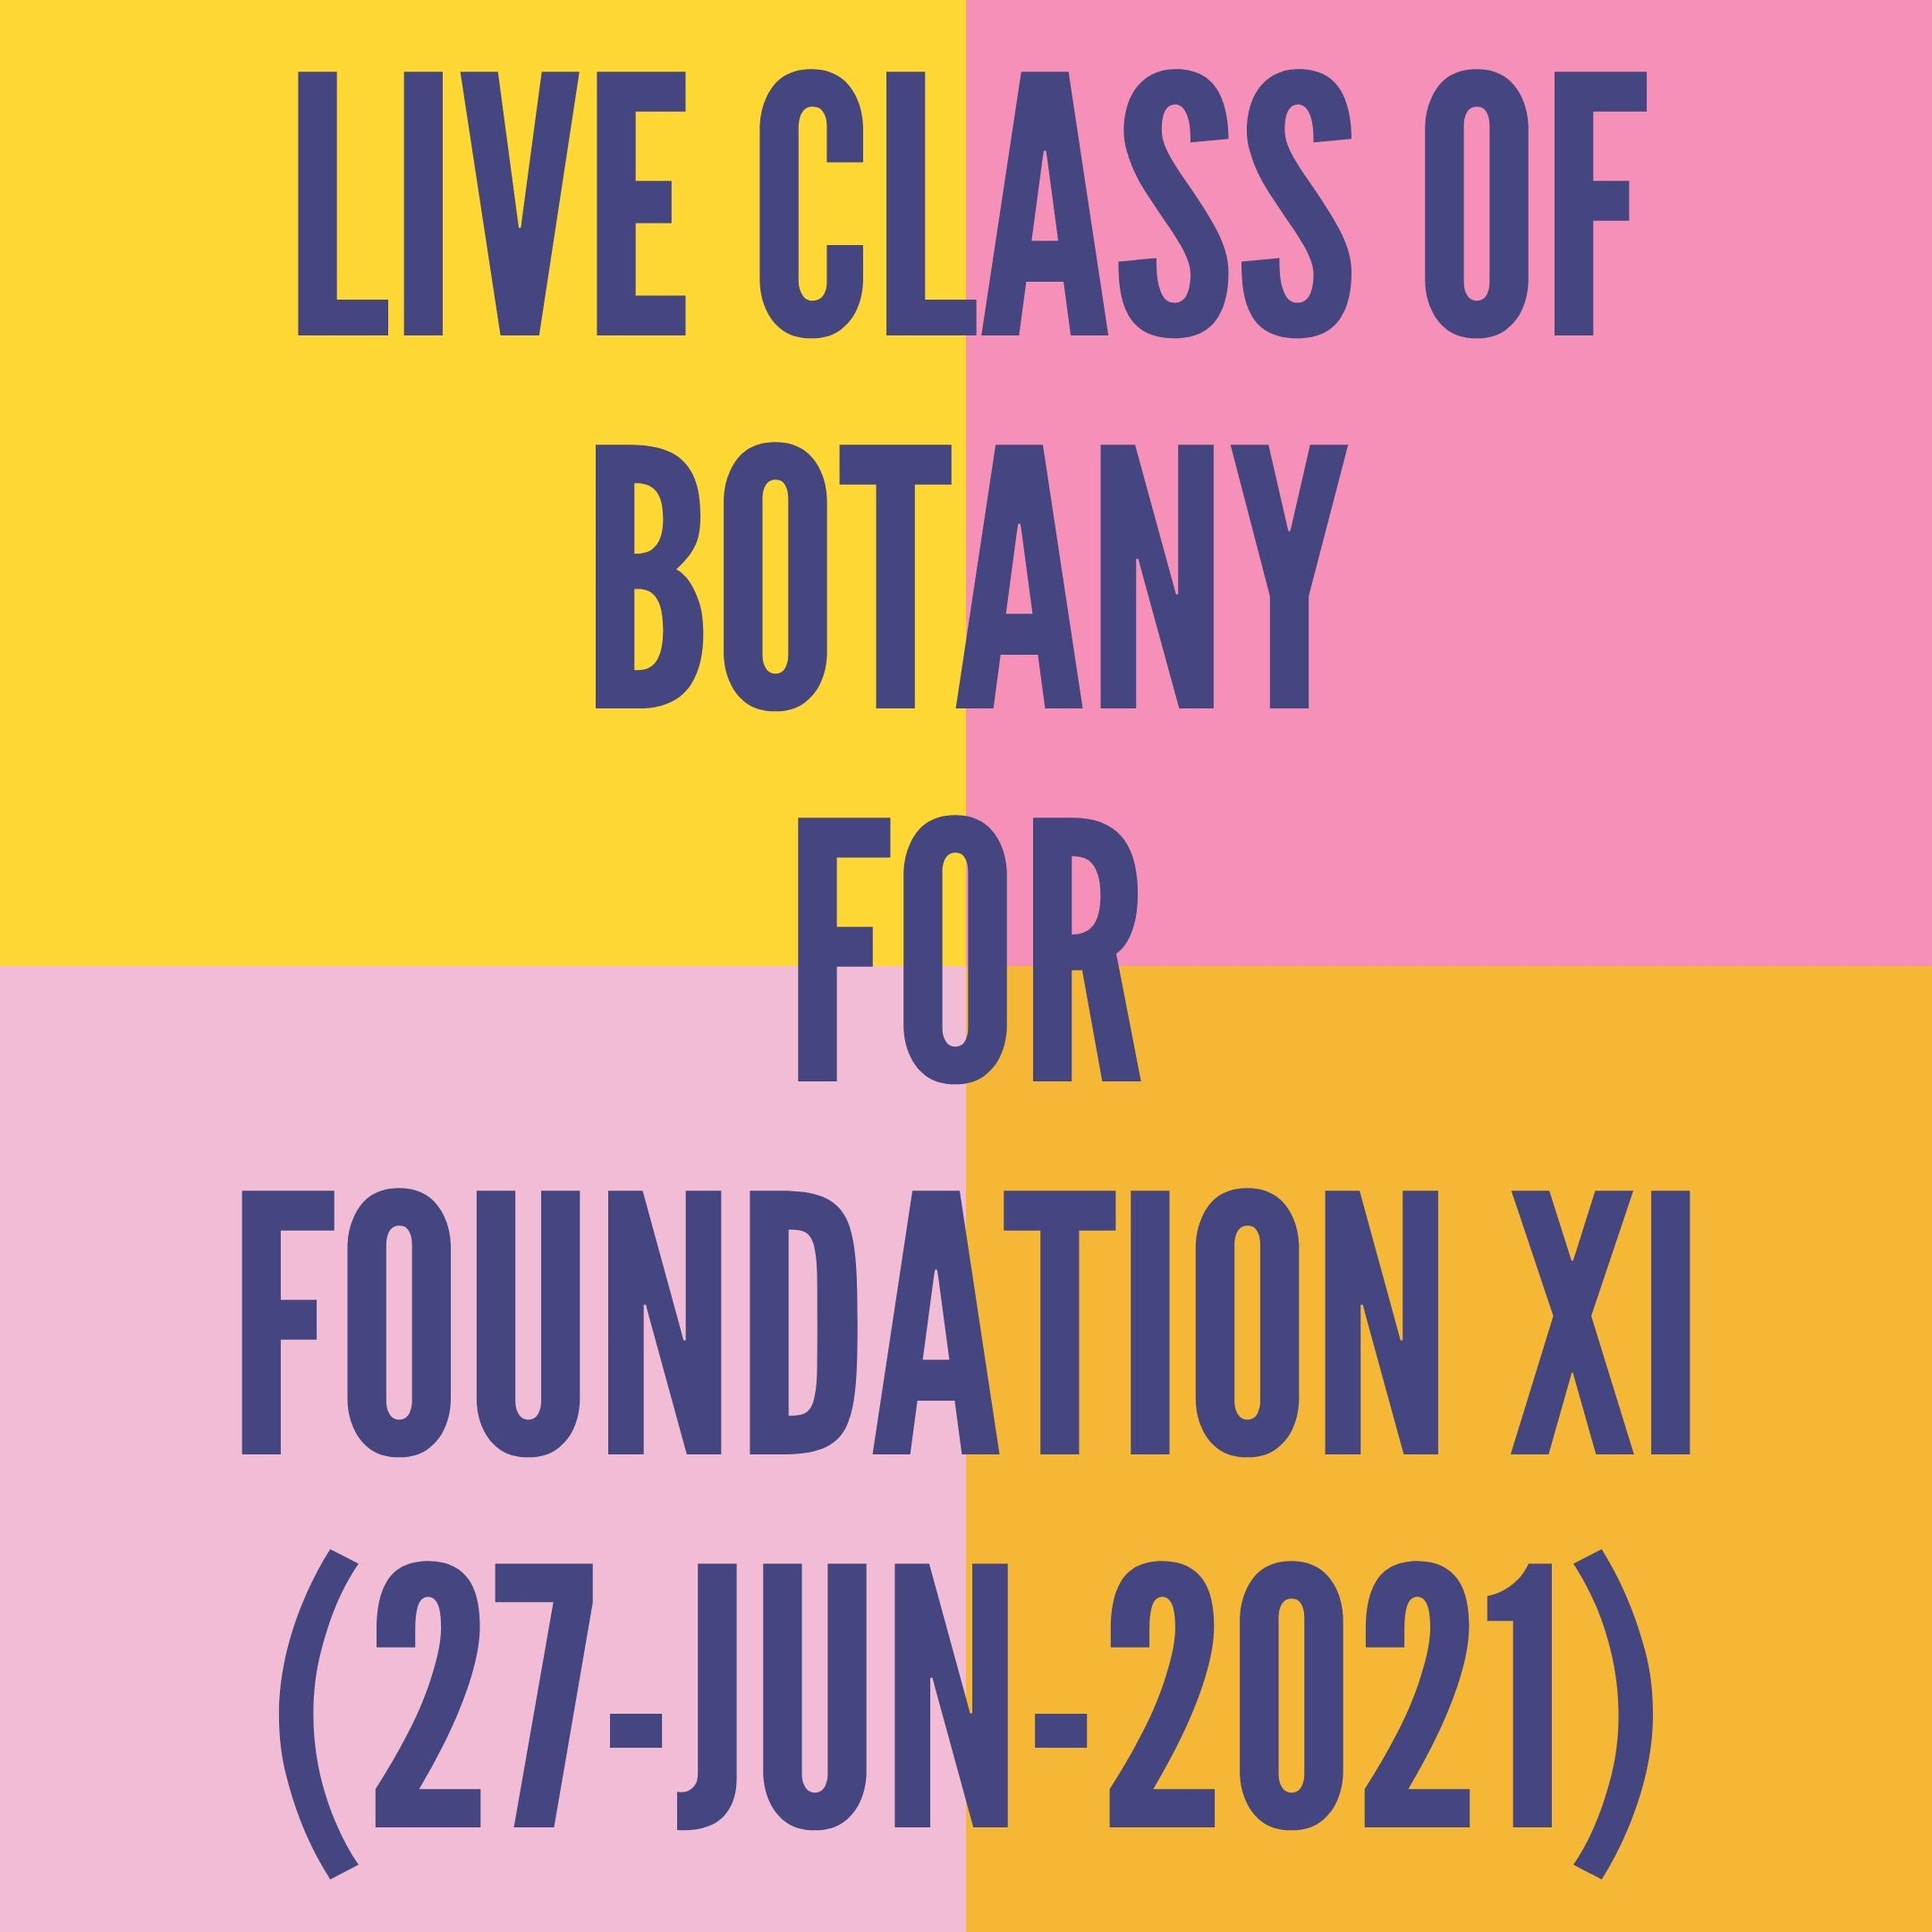 LIVE CLASS OF BOTANY FOR FOUNDATION XI (27-JUN-2021) CELL-THE UNIT OF LIFE